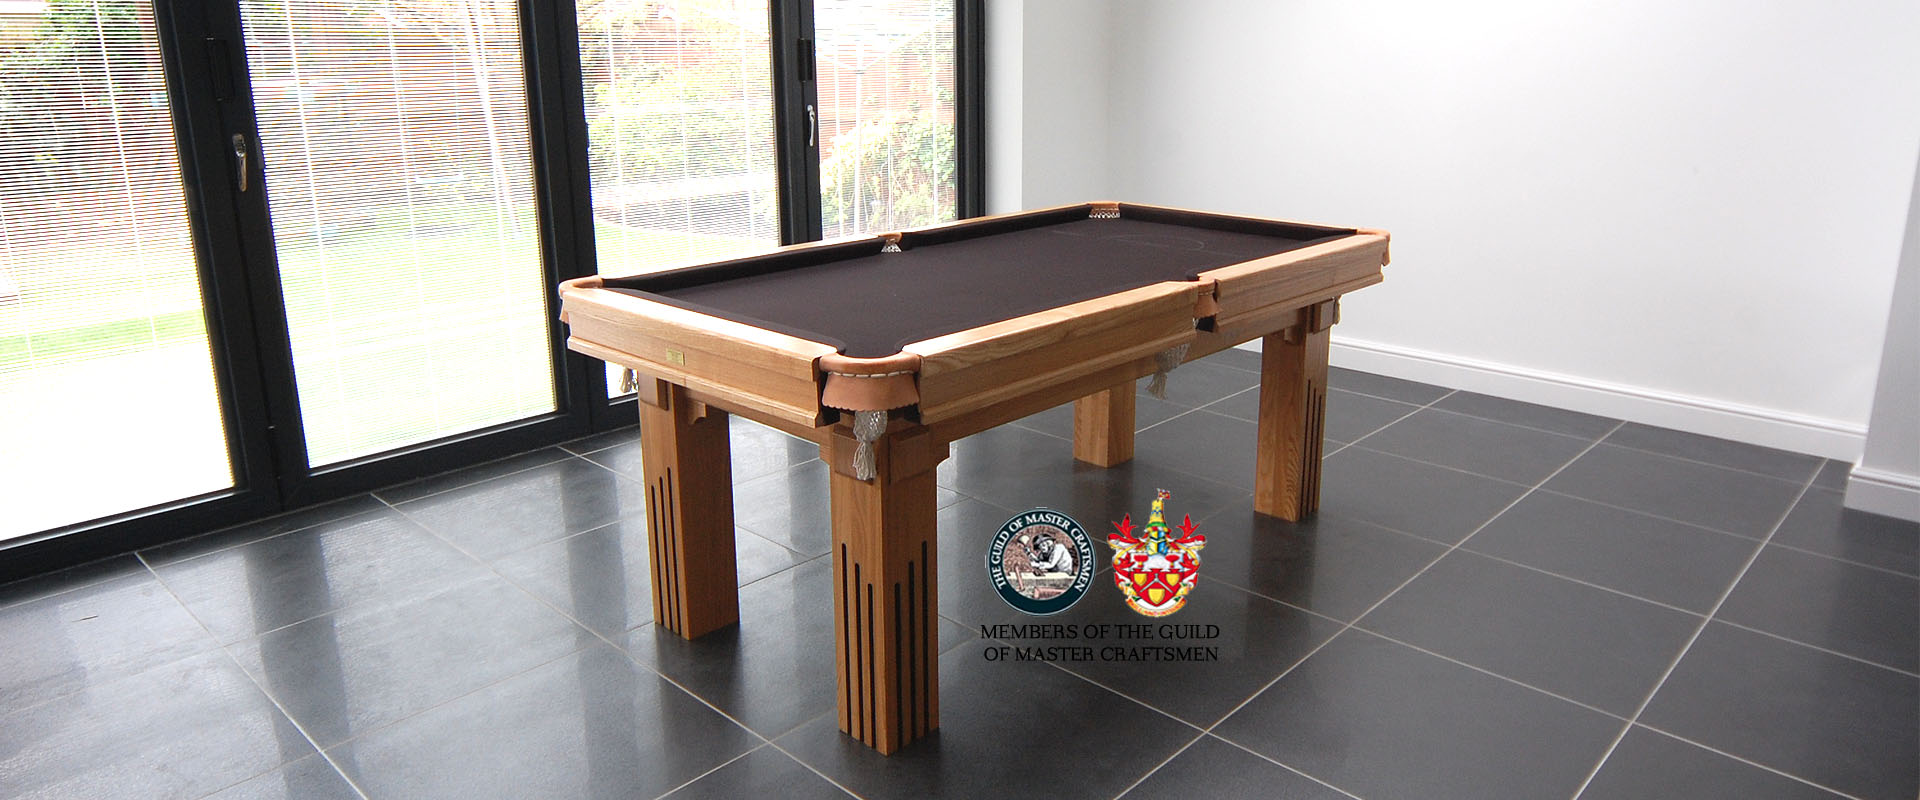 Birmingham Billiards Snooker Tables Pool Tables Snooker Cues - Pool table movers birmingham al